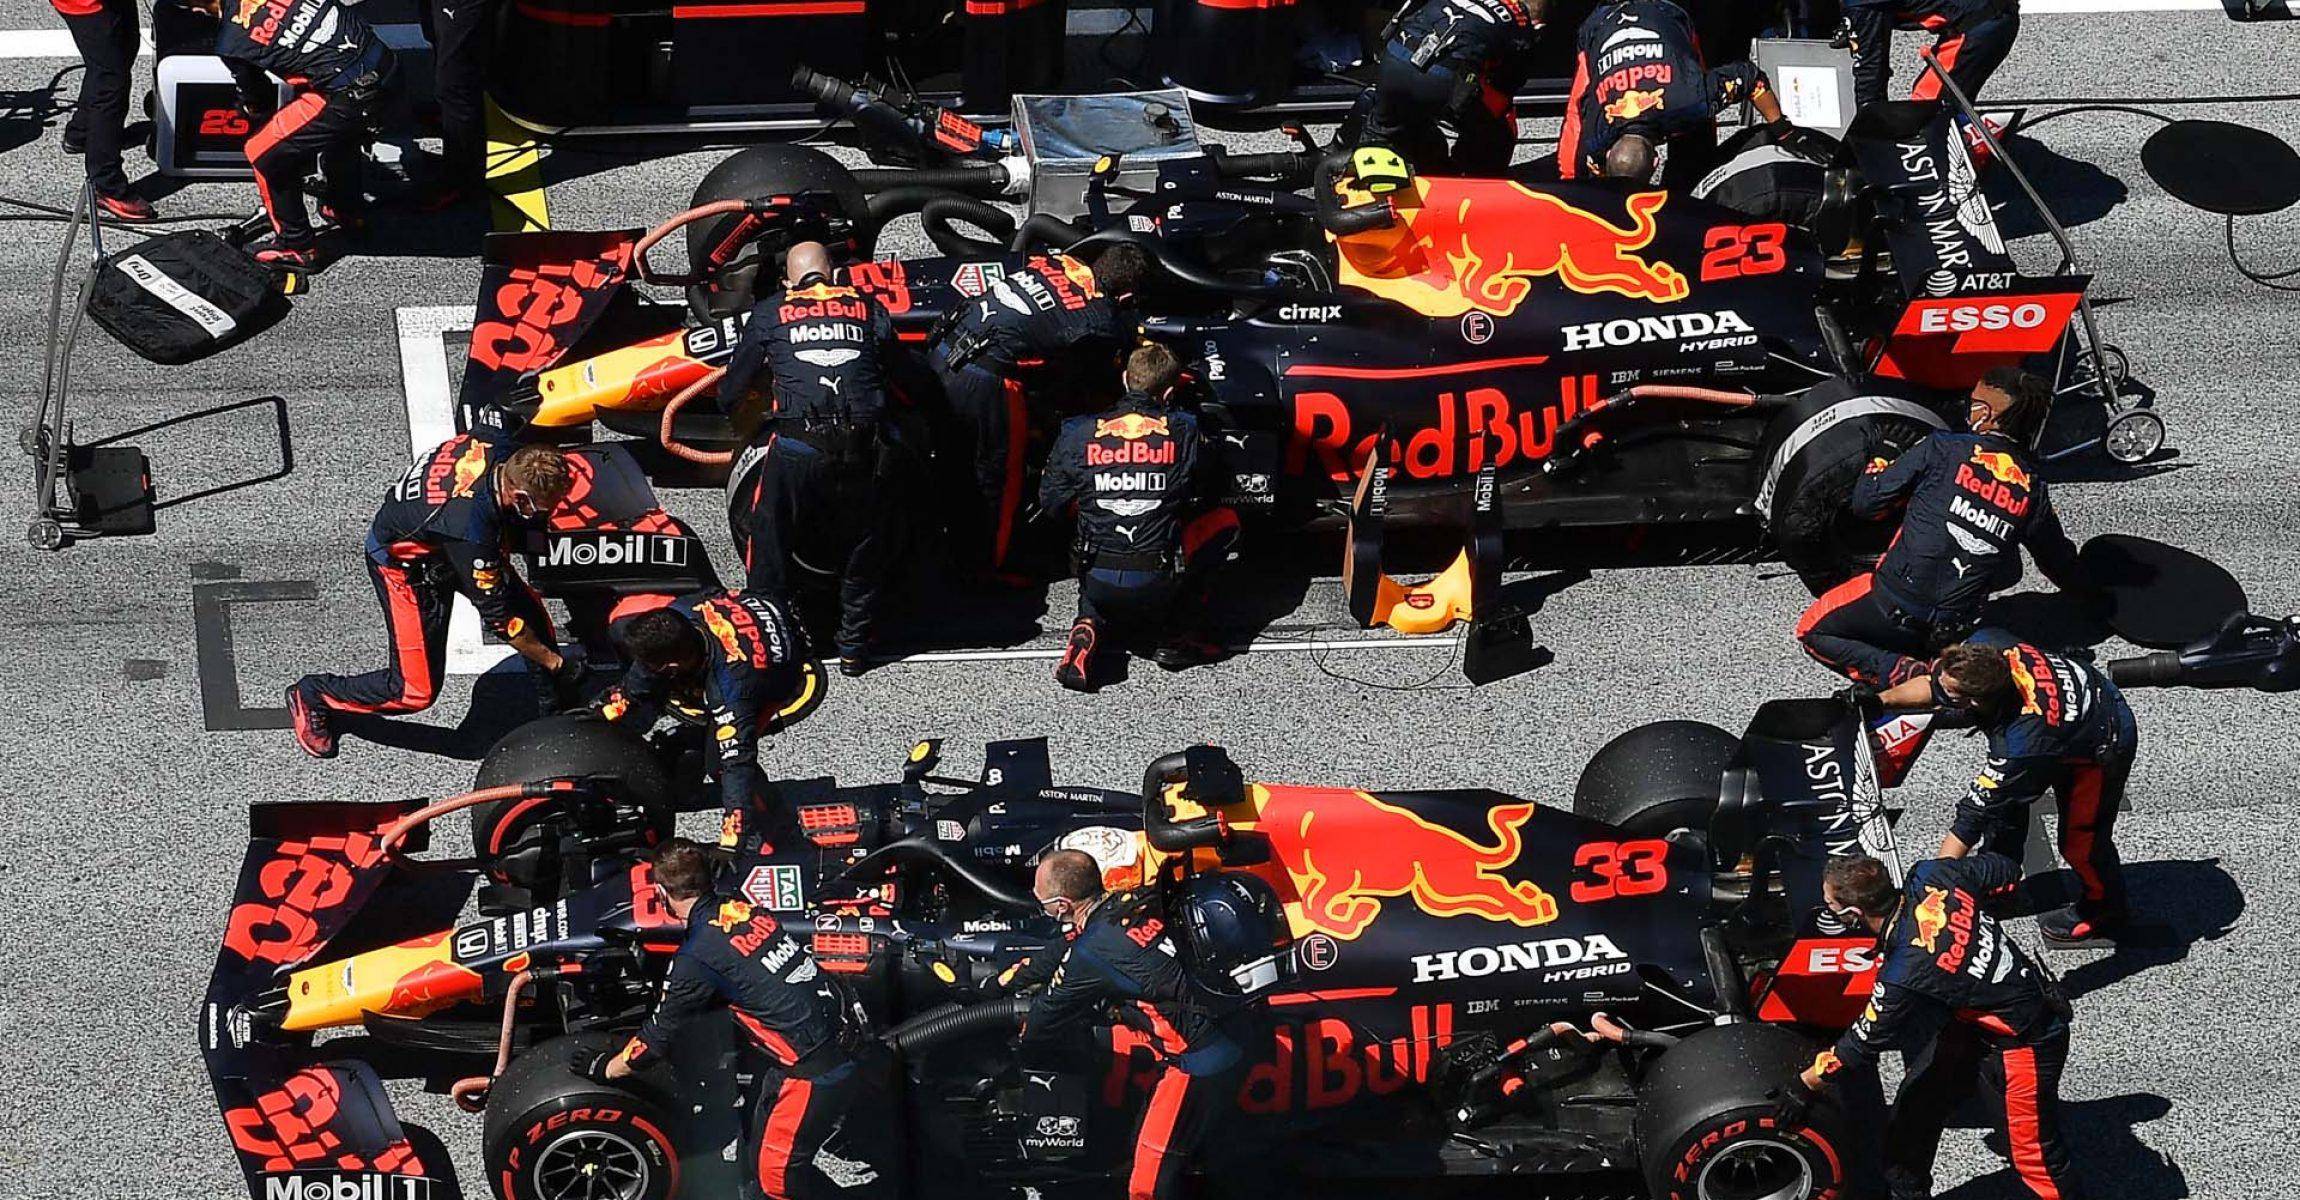 SPIELBERG, AUSTRIA - JULY 05: The cars of Max Verstappen of Netherlands and Red Bull Racing and Alexander Albon of Thailand and Red Bull Racing are prepared on the grid ahead of the Formula One Grand Prix of Austria at Red Bull Ring on July 05, 2020 in Spielberg, Austria. (Photo by Joe Klamar/Pool via Getty Images)